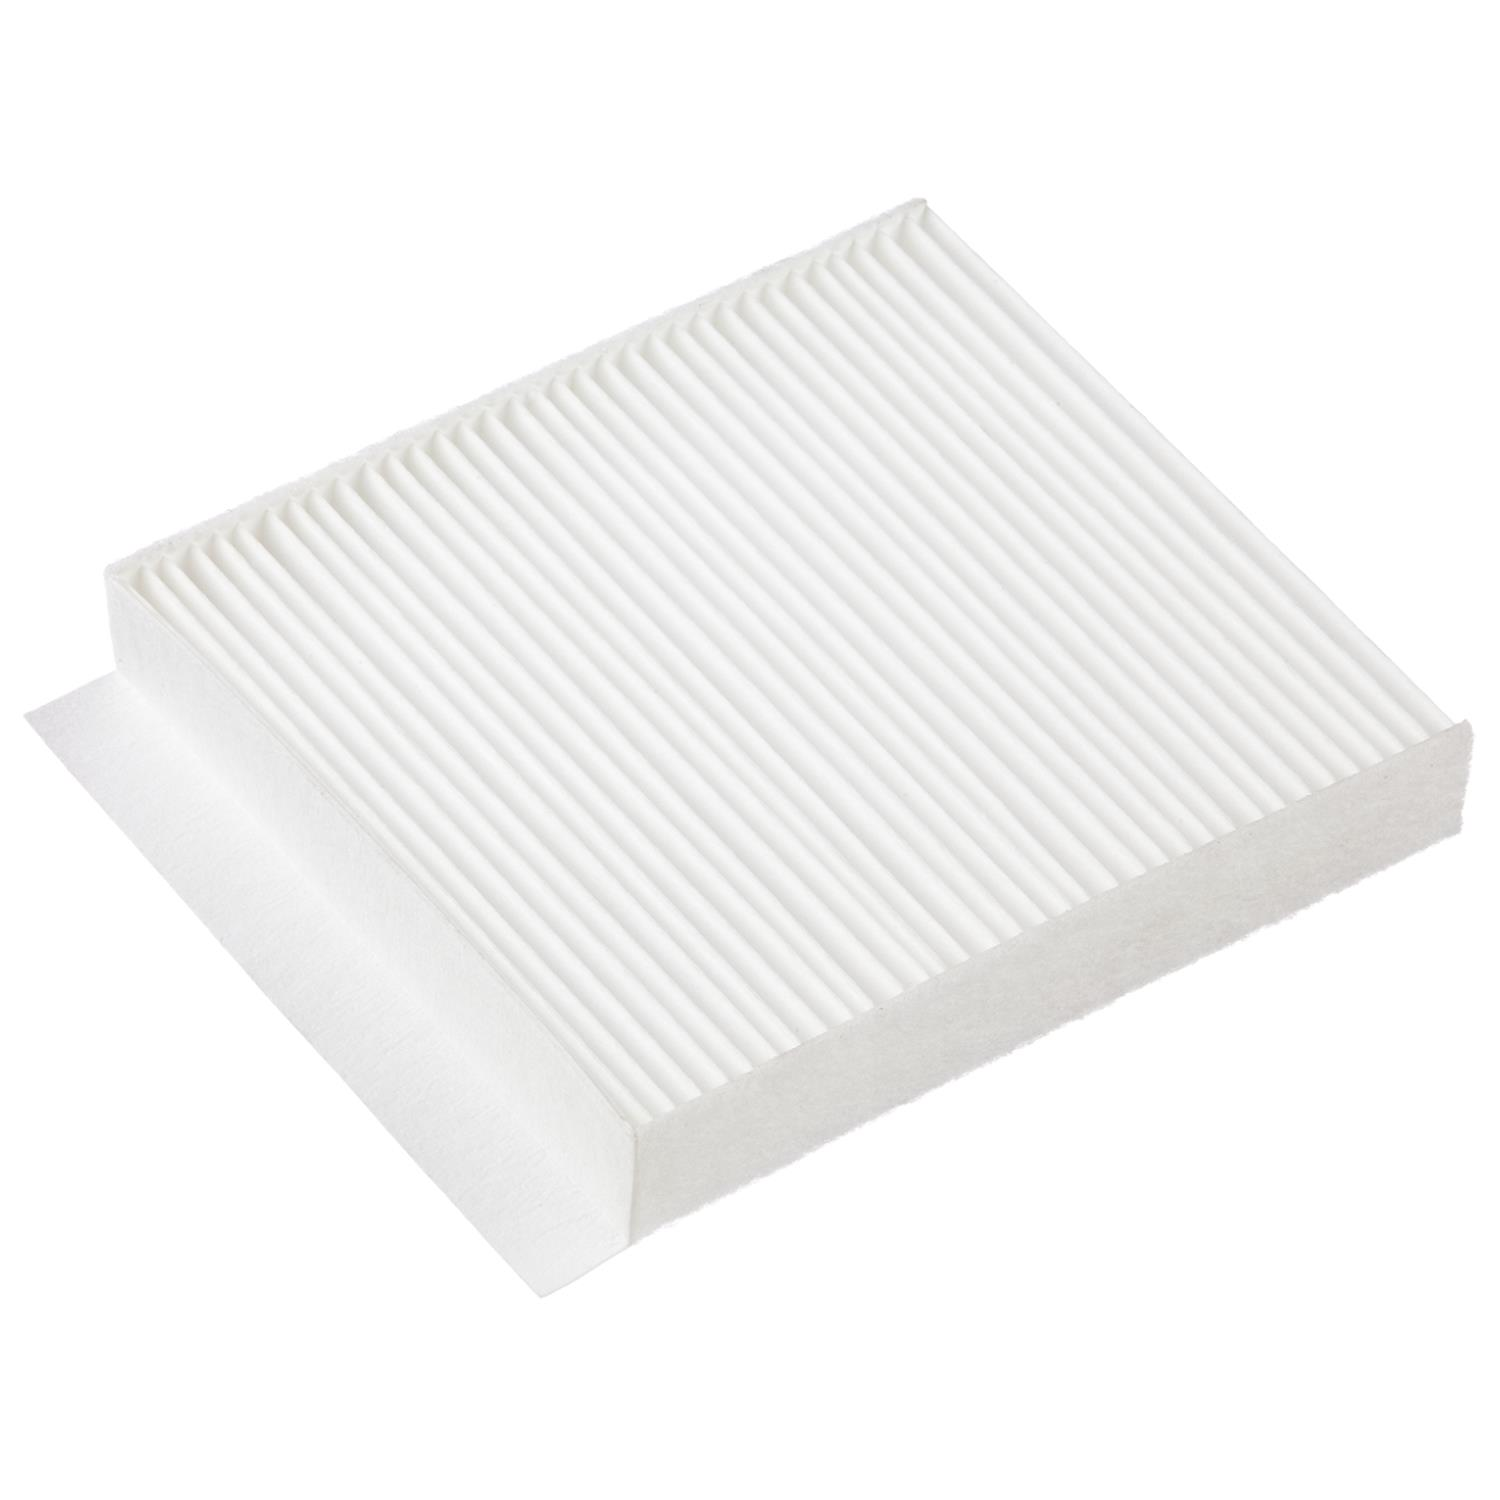 Atp Automotive Cf 229 Replacement Cabin Filter